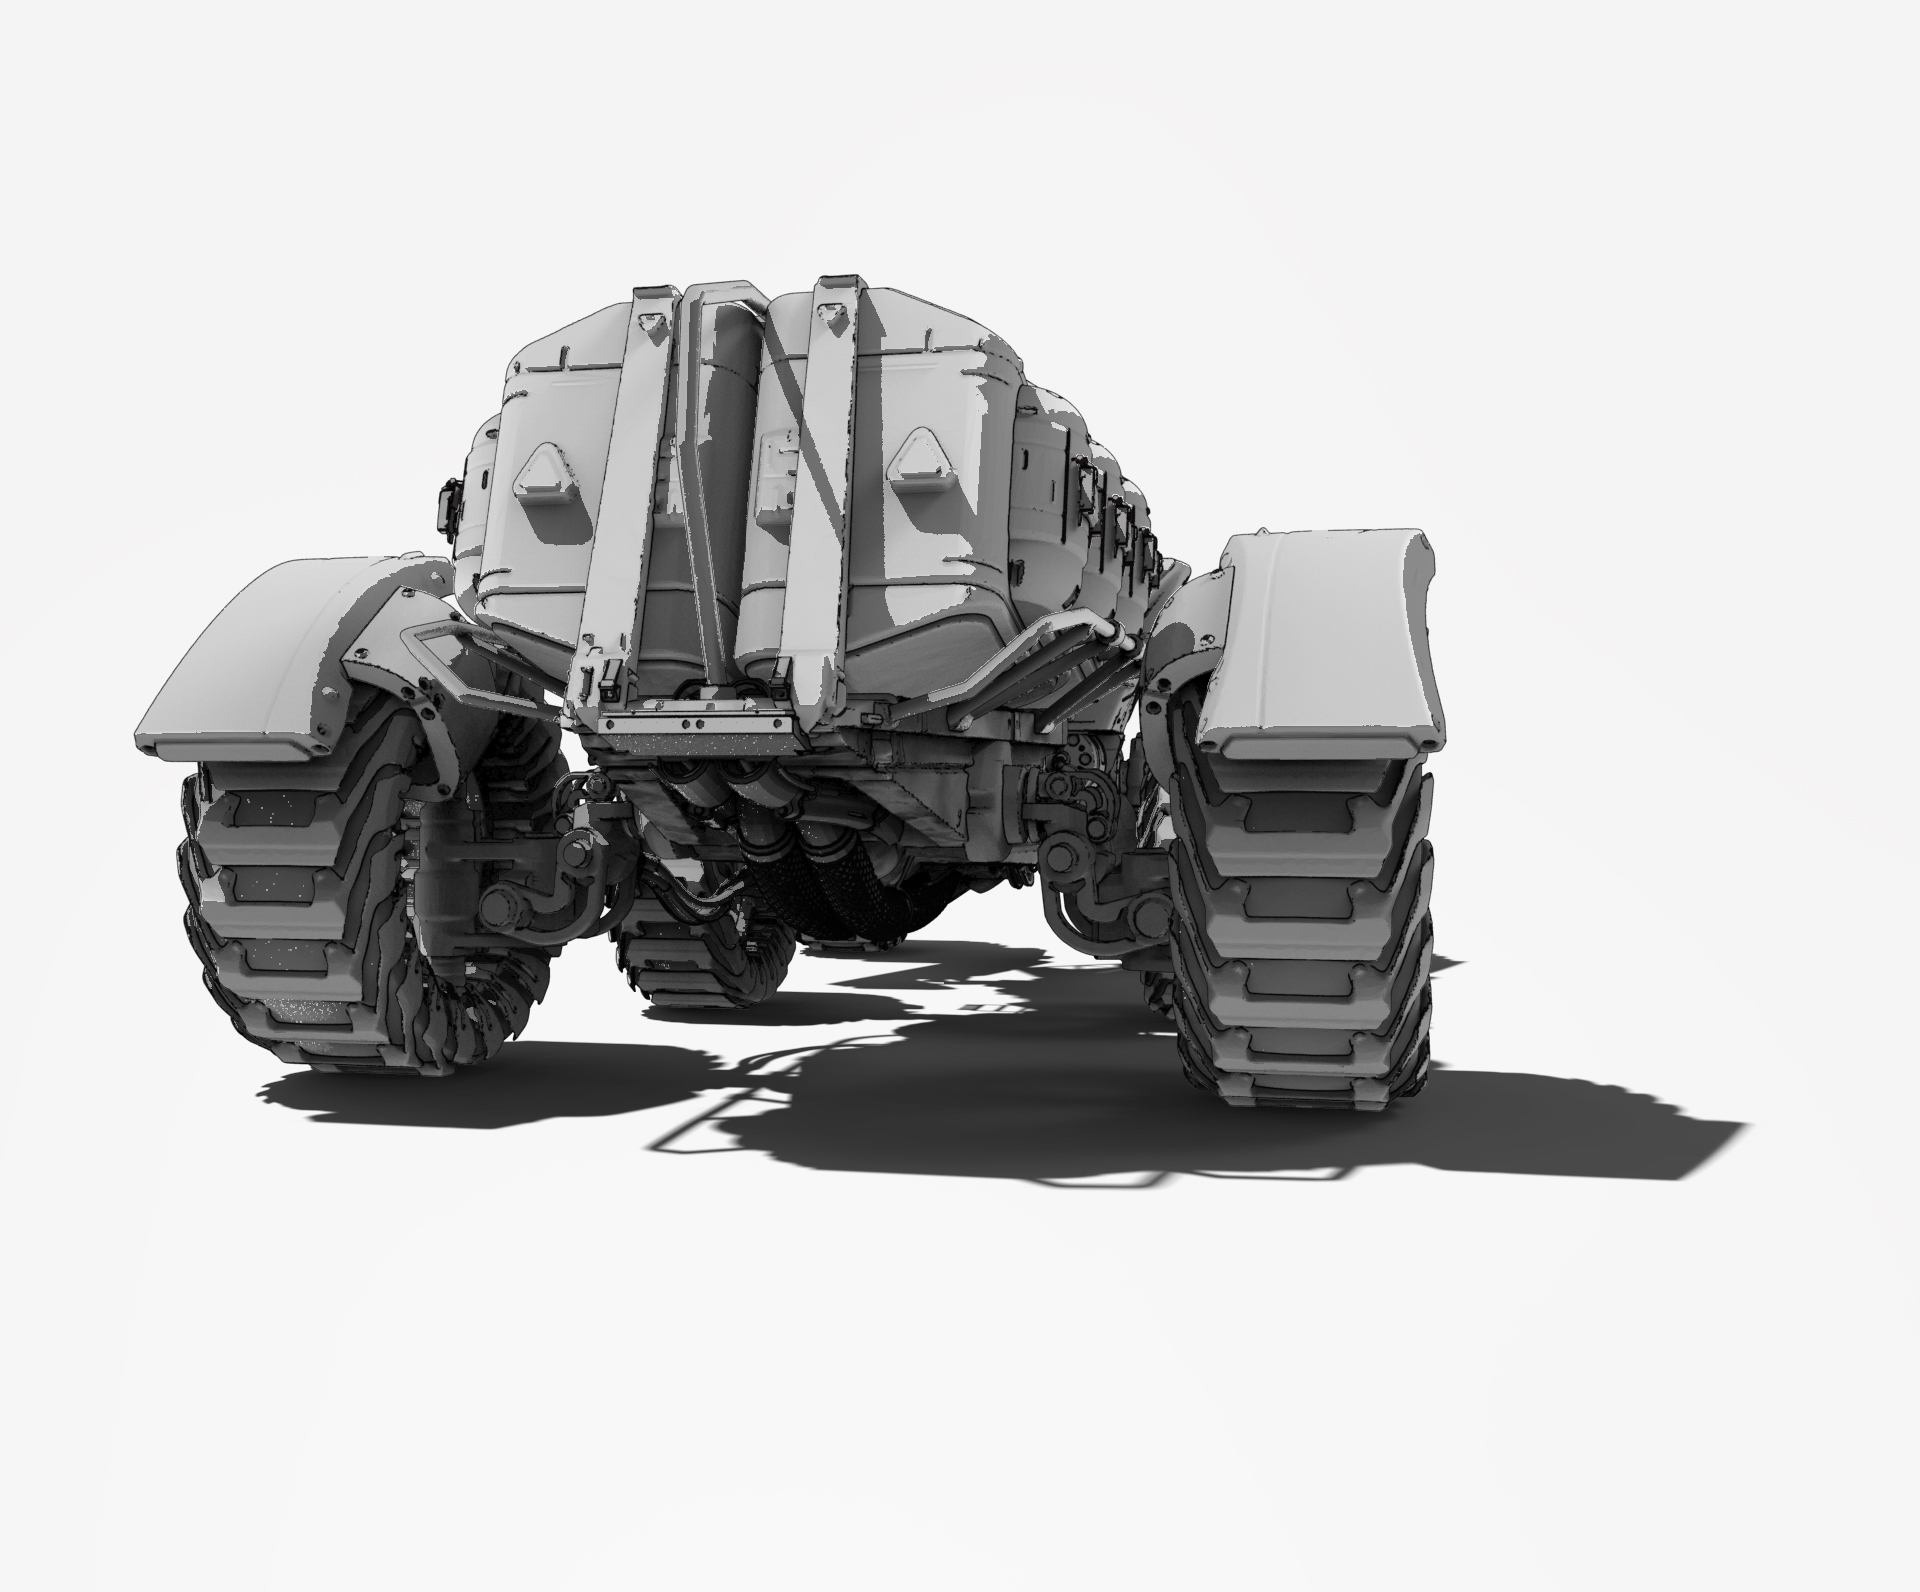 Mars_buggy_kitBash.61.jpg